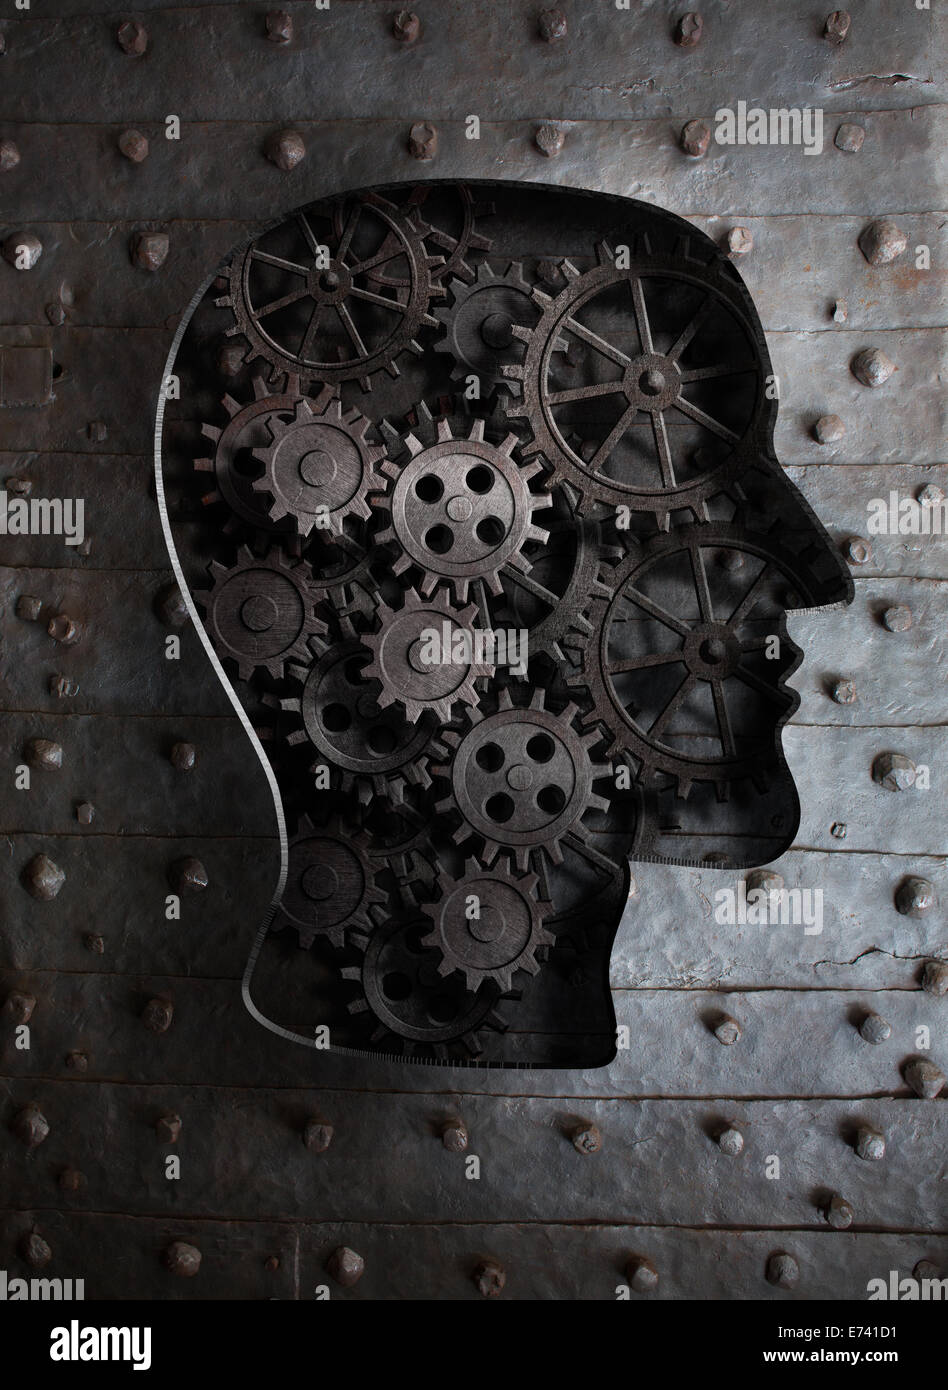 Brain concept: metal gears and cogs in human head - Stock Image